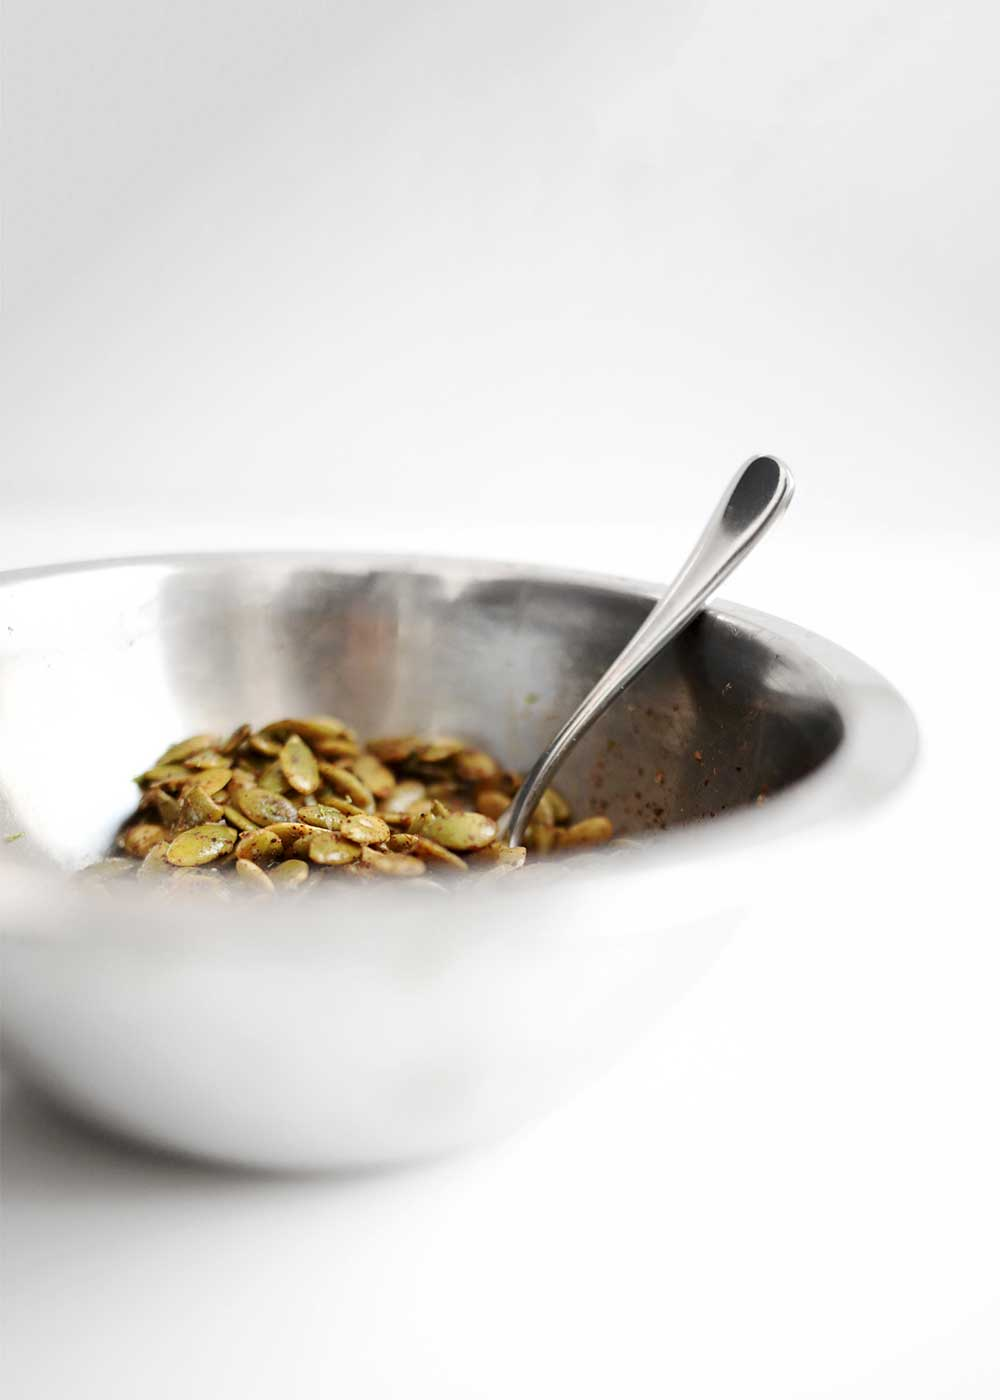 Spicy Tex-Mex Pepita Seeds from The Fauxmartha